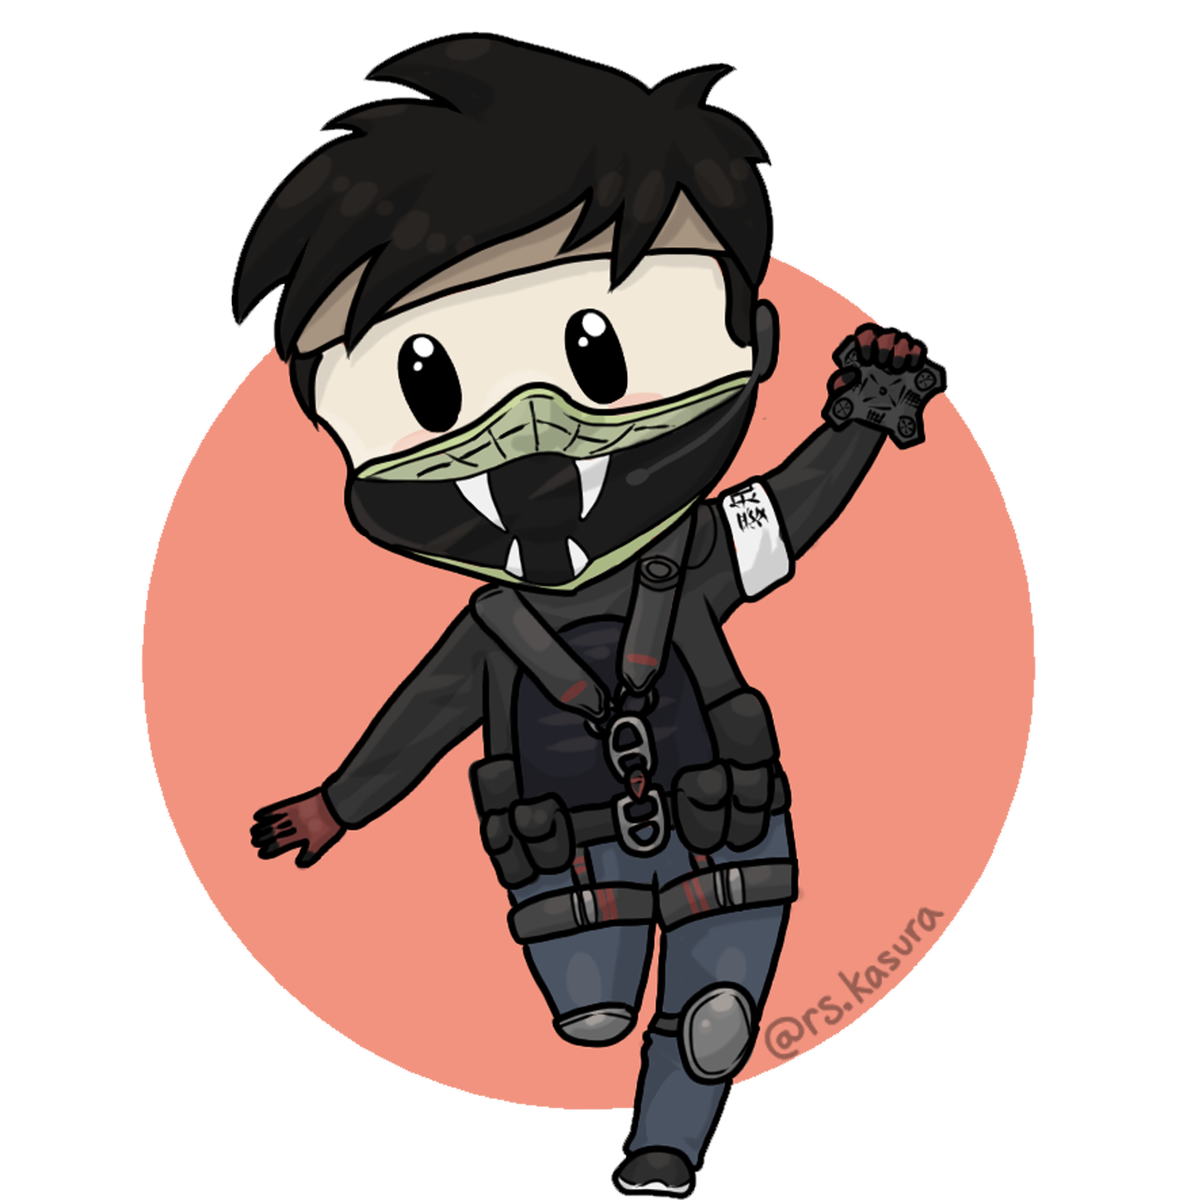 echo drawing rainbow six siege